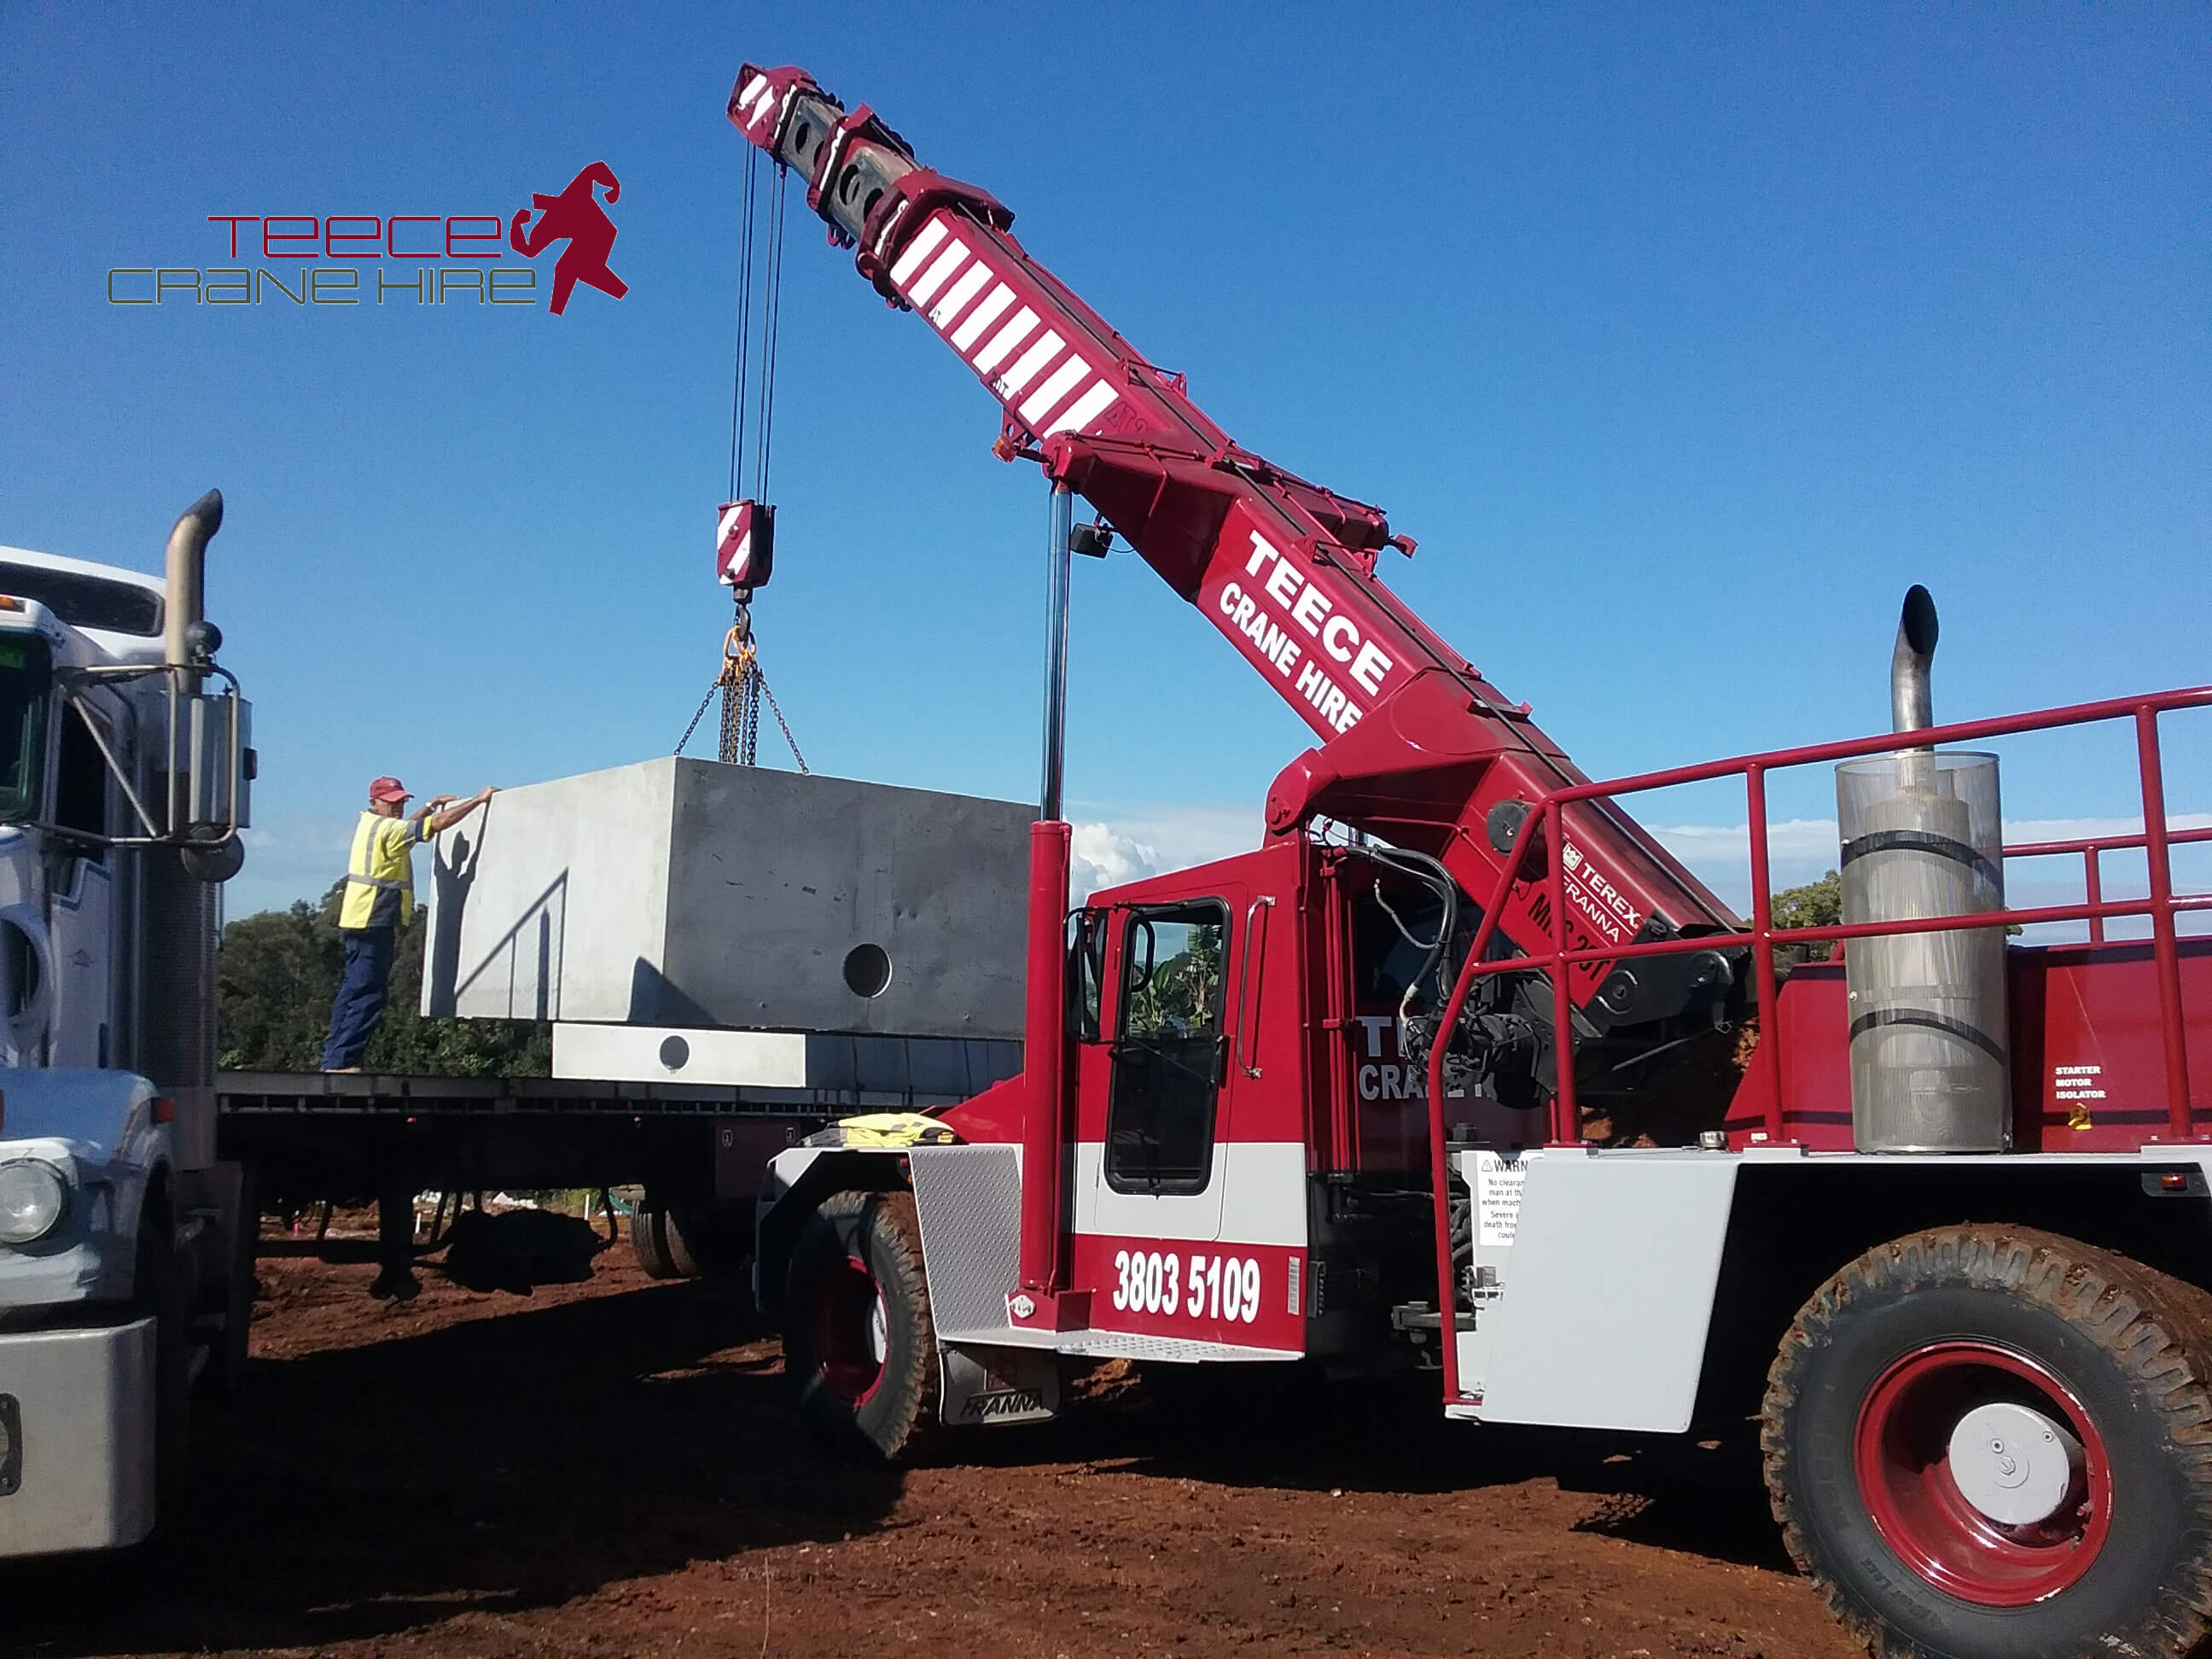 Teece Crane Hire - Hire On Site Constructing Townhouses In Brisbane 3 - Brisbane